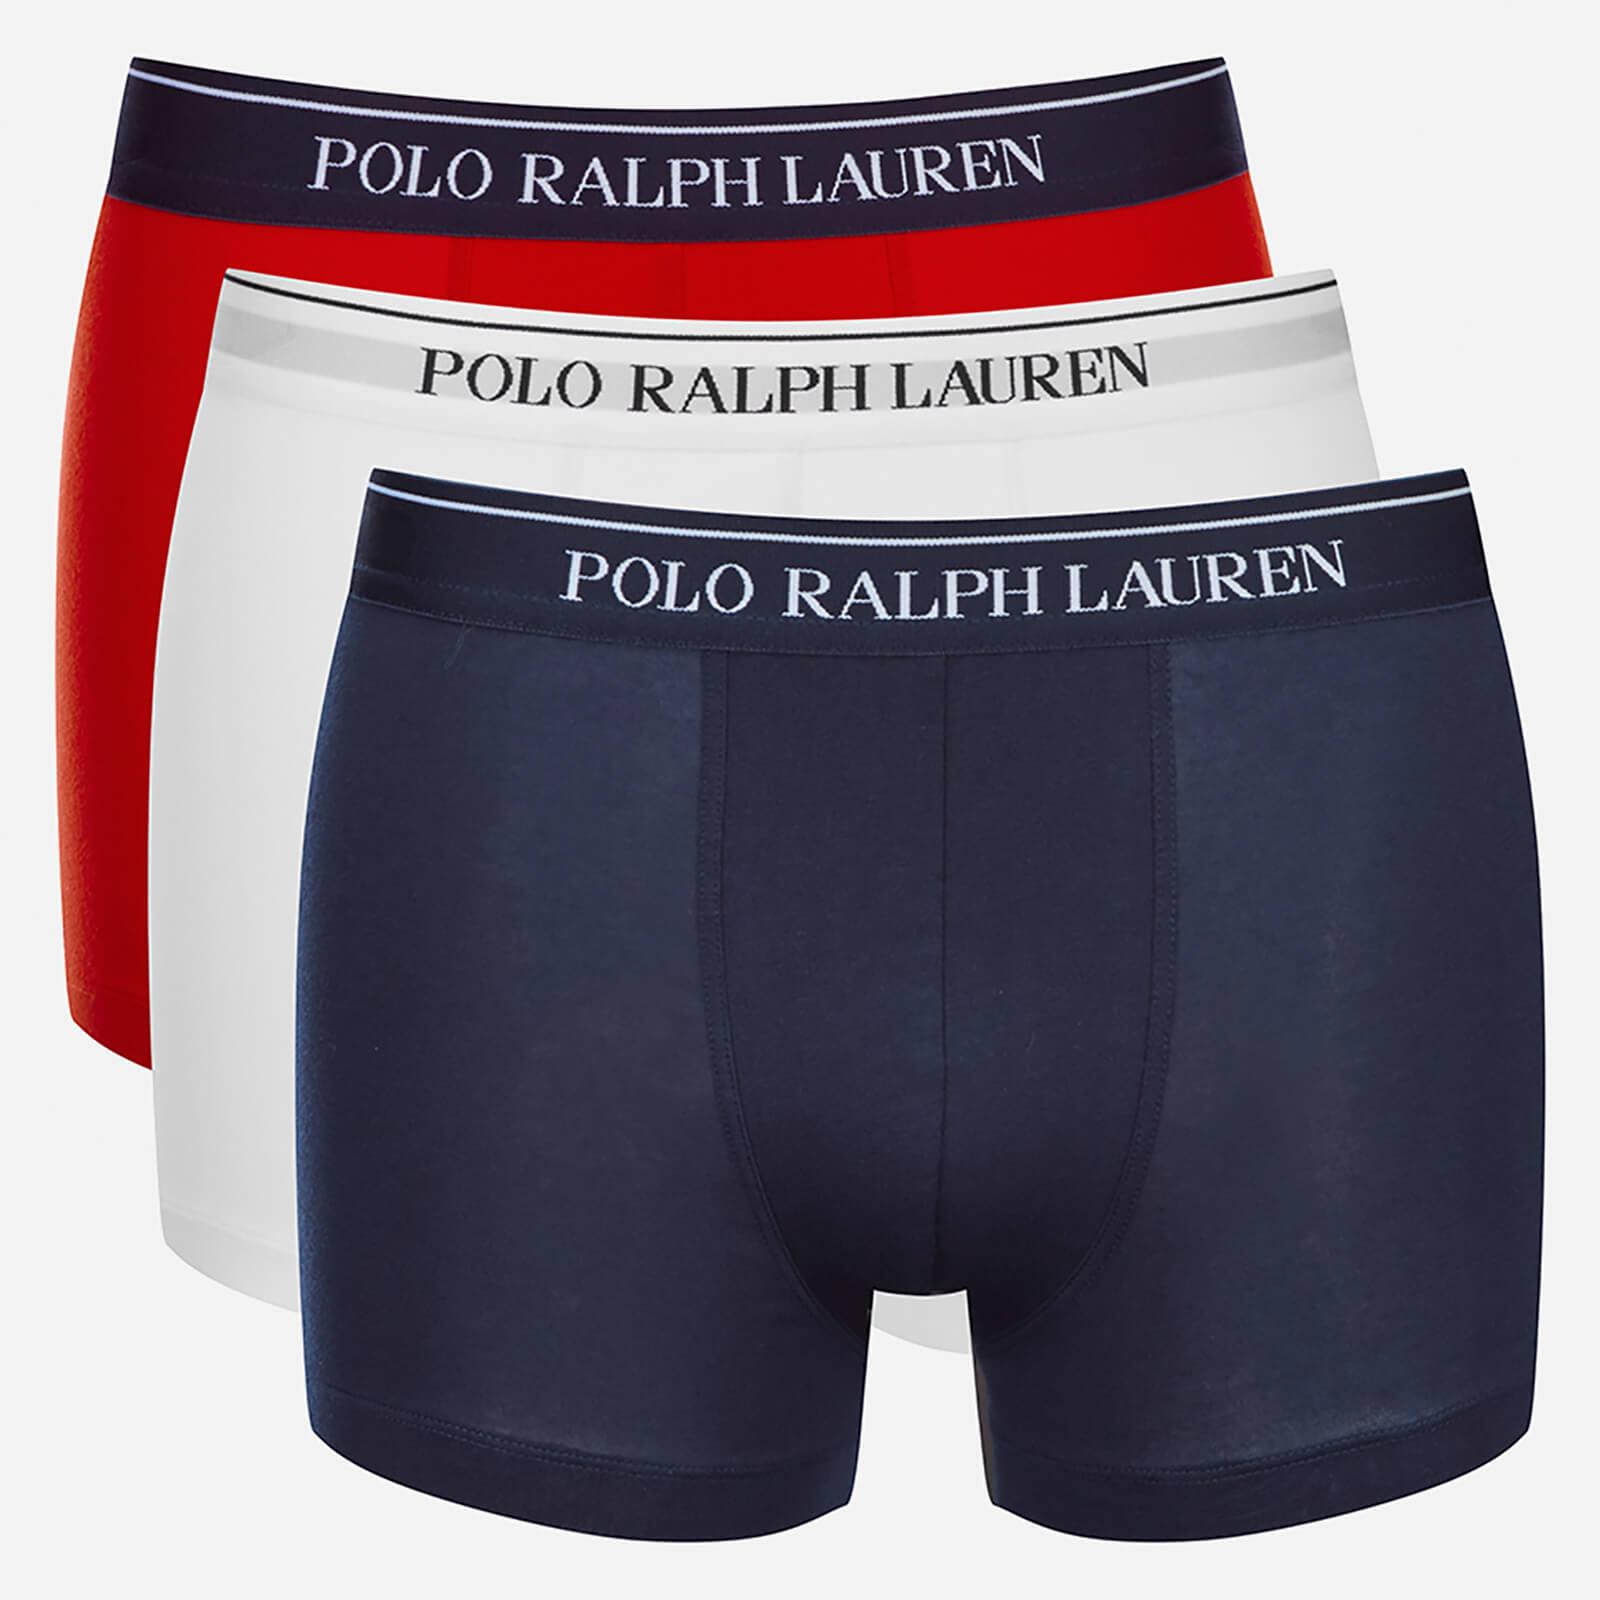 3cd460431a87 Polo Ralph Lauren Men's 3 Pack Boxer Shorts - White/Red/Blue - Free UK  Delivery over £50